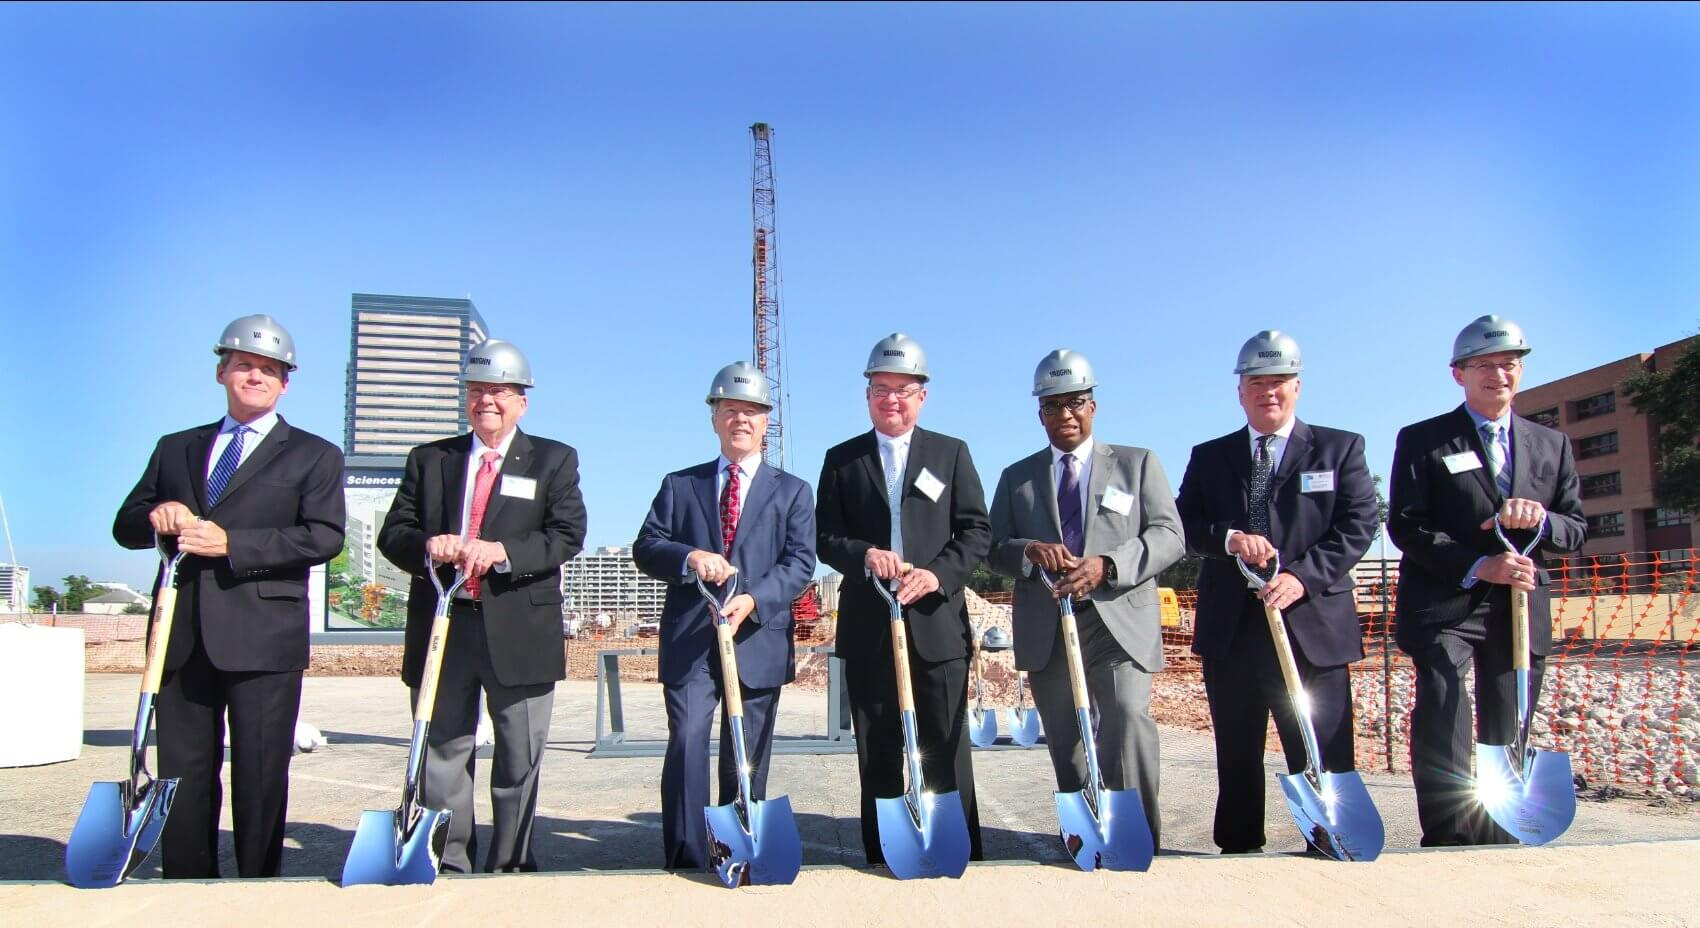 Shovels in hand, officials wait to break ground at the site of the new Harris County Institute of Forensic Sciences (HCIFS) facility. (Provided by: HCIFS)